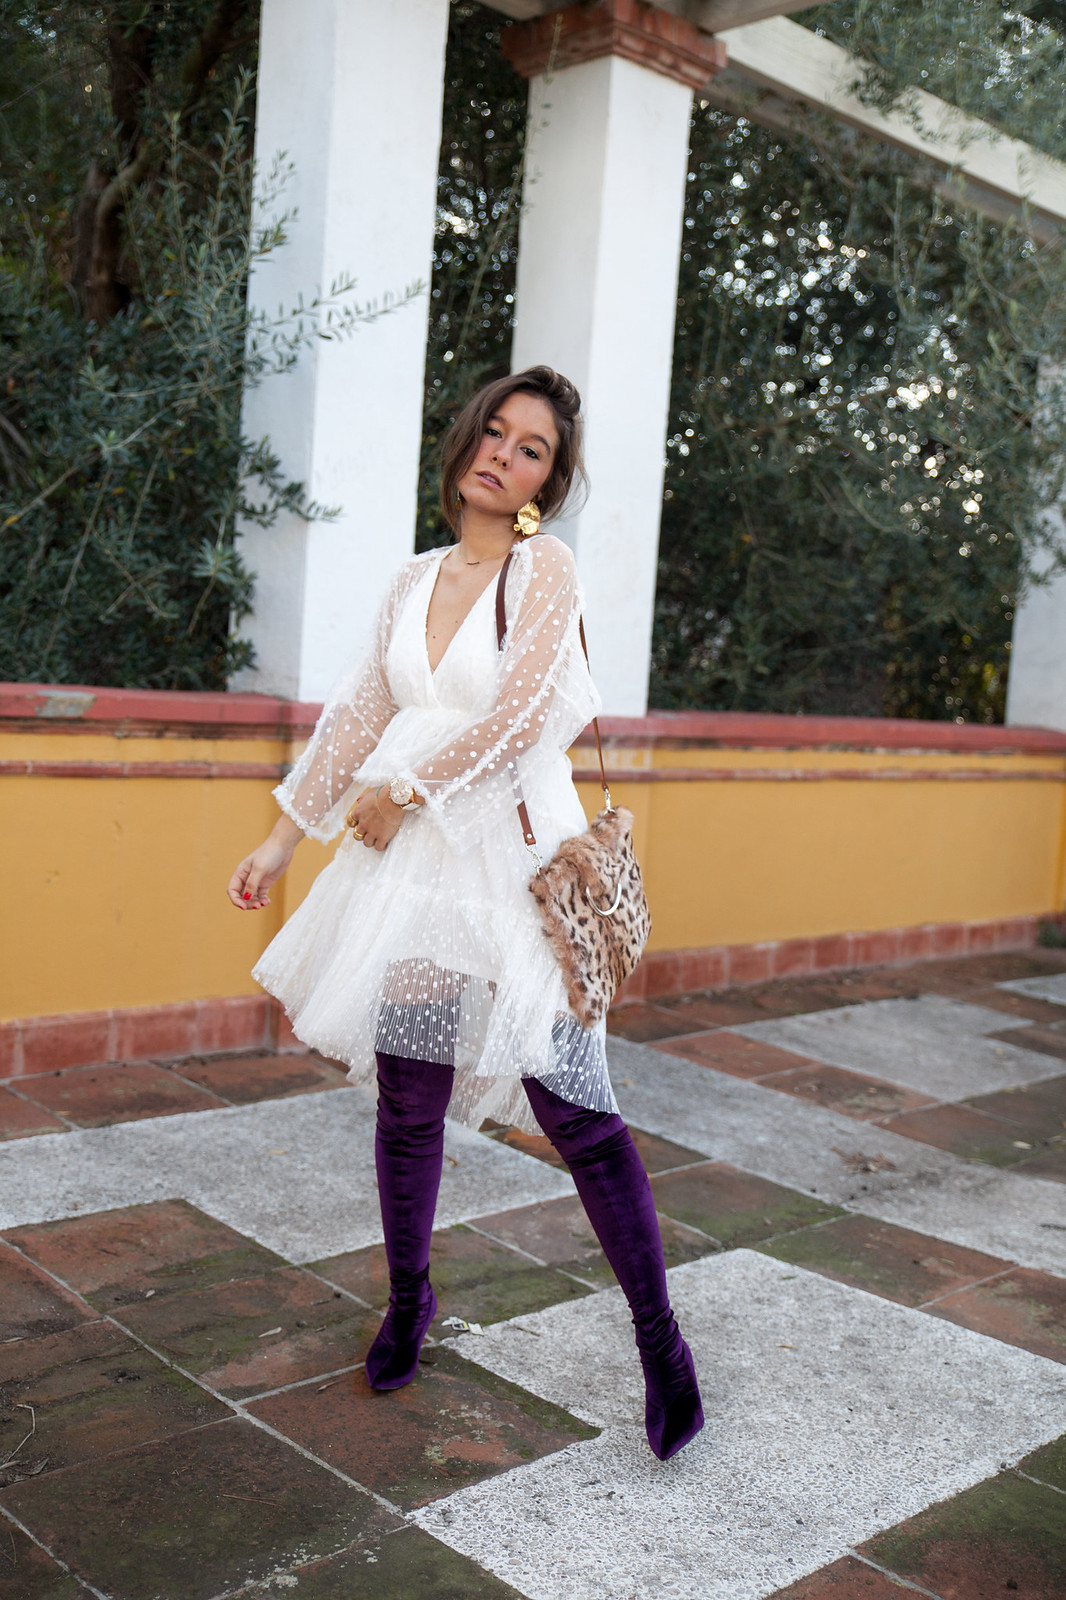 01_DANITY_BOHO_WHITE_DRESS_THEGUESTGIRL_AMBASSADOR_PARTY_DRESS_VESTIDOS_FIESTA_NAVIDADES_TENDENCIA